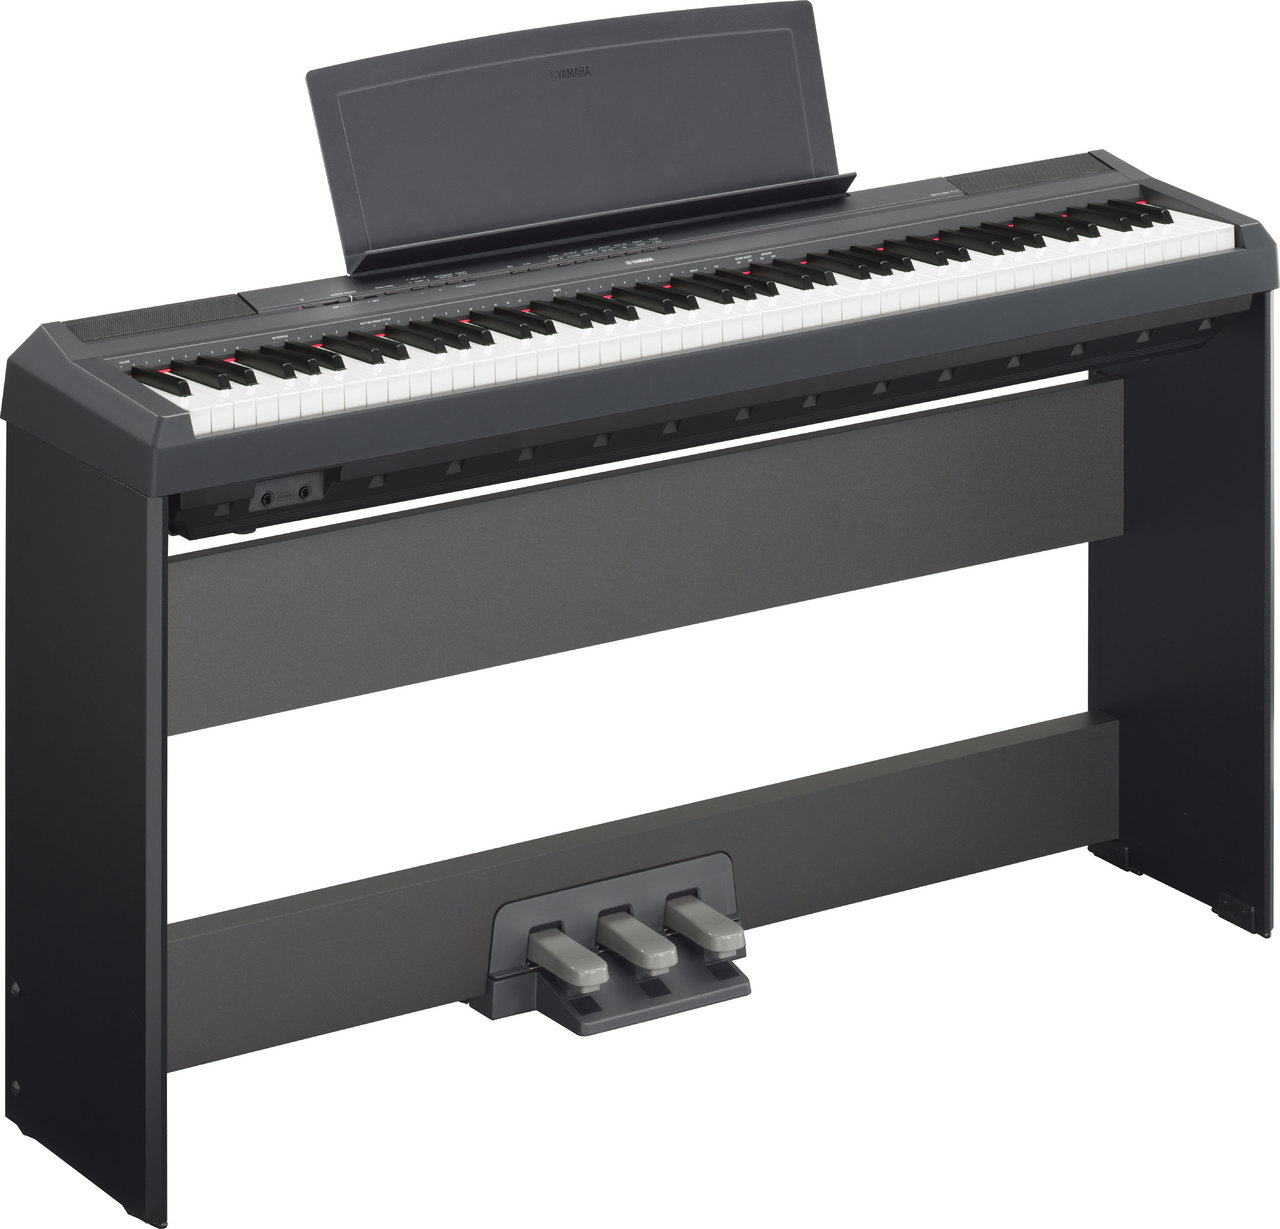 YAMAHA P Series P-115B / WH + Stand + pedal unit [WH in the storefront display] [shipping service]